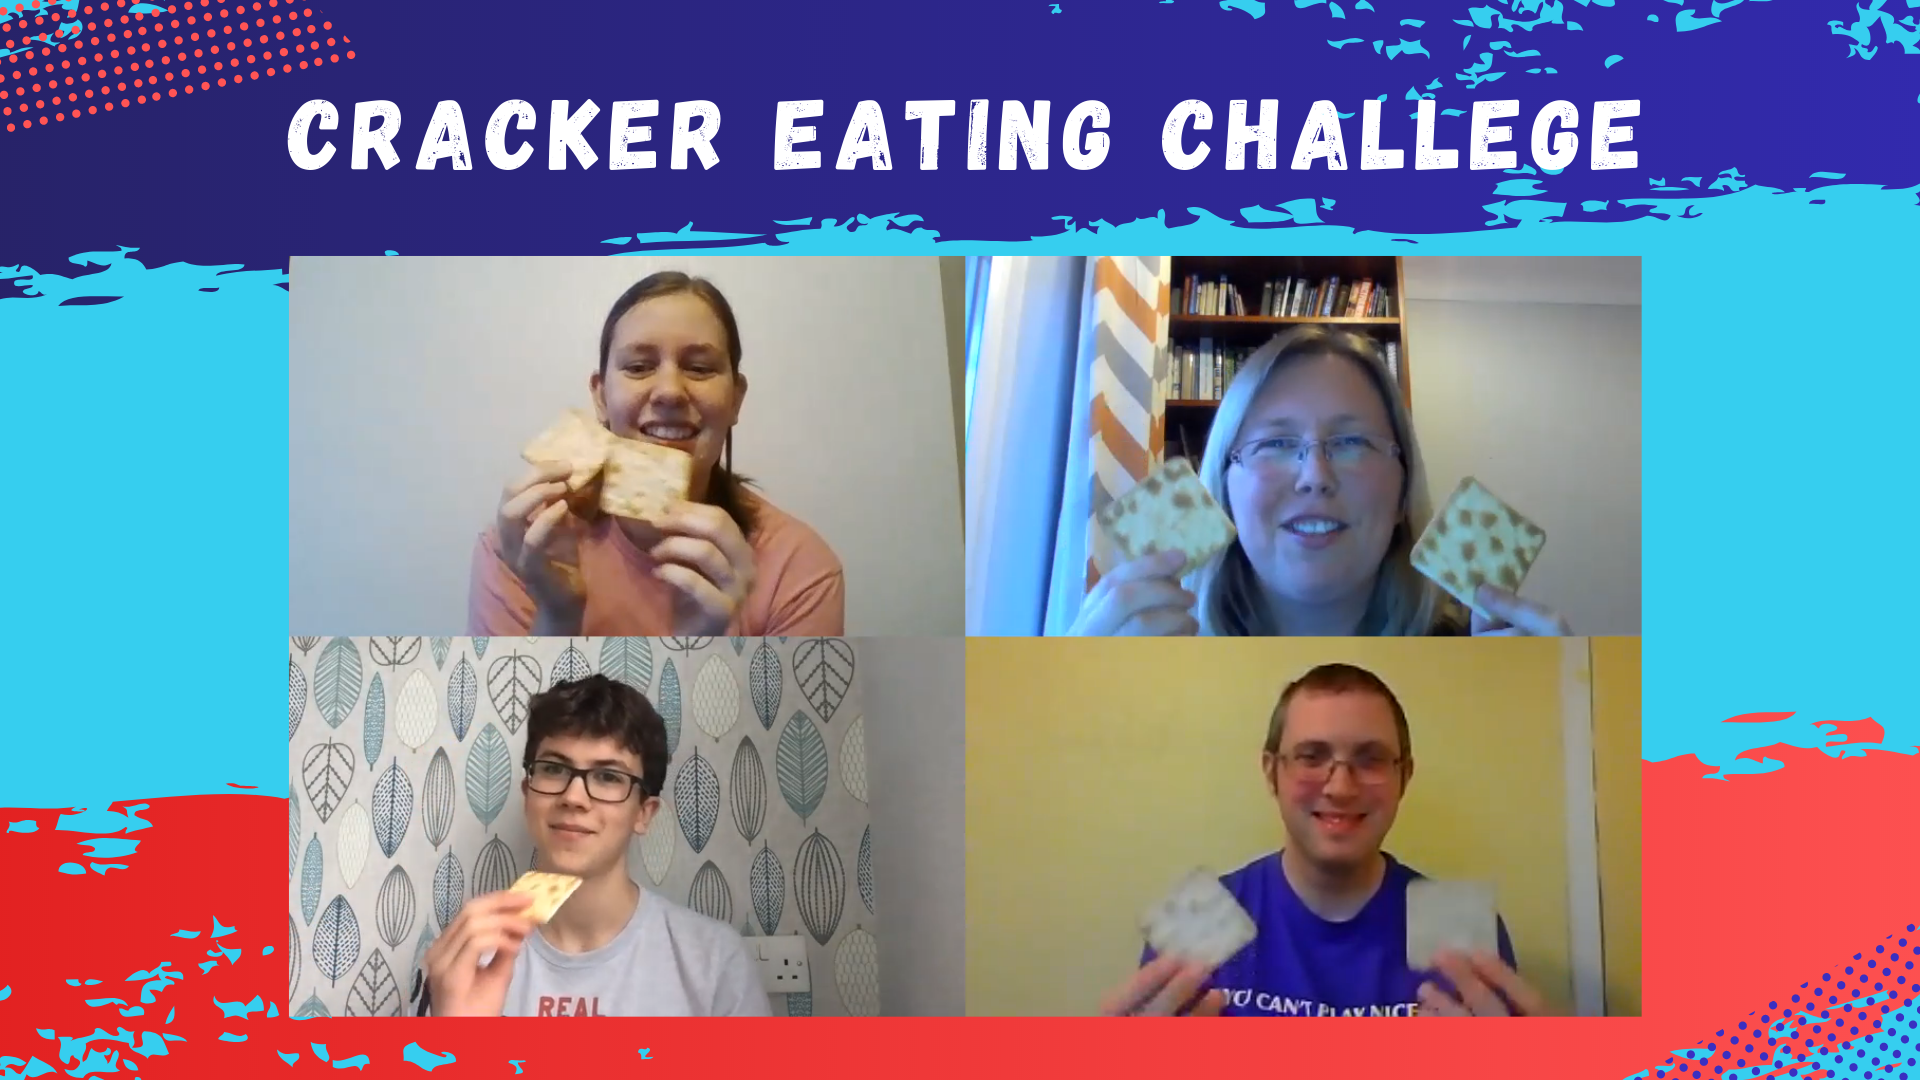 Cracker Eating Image